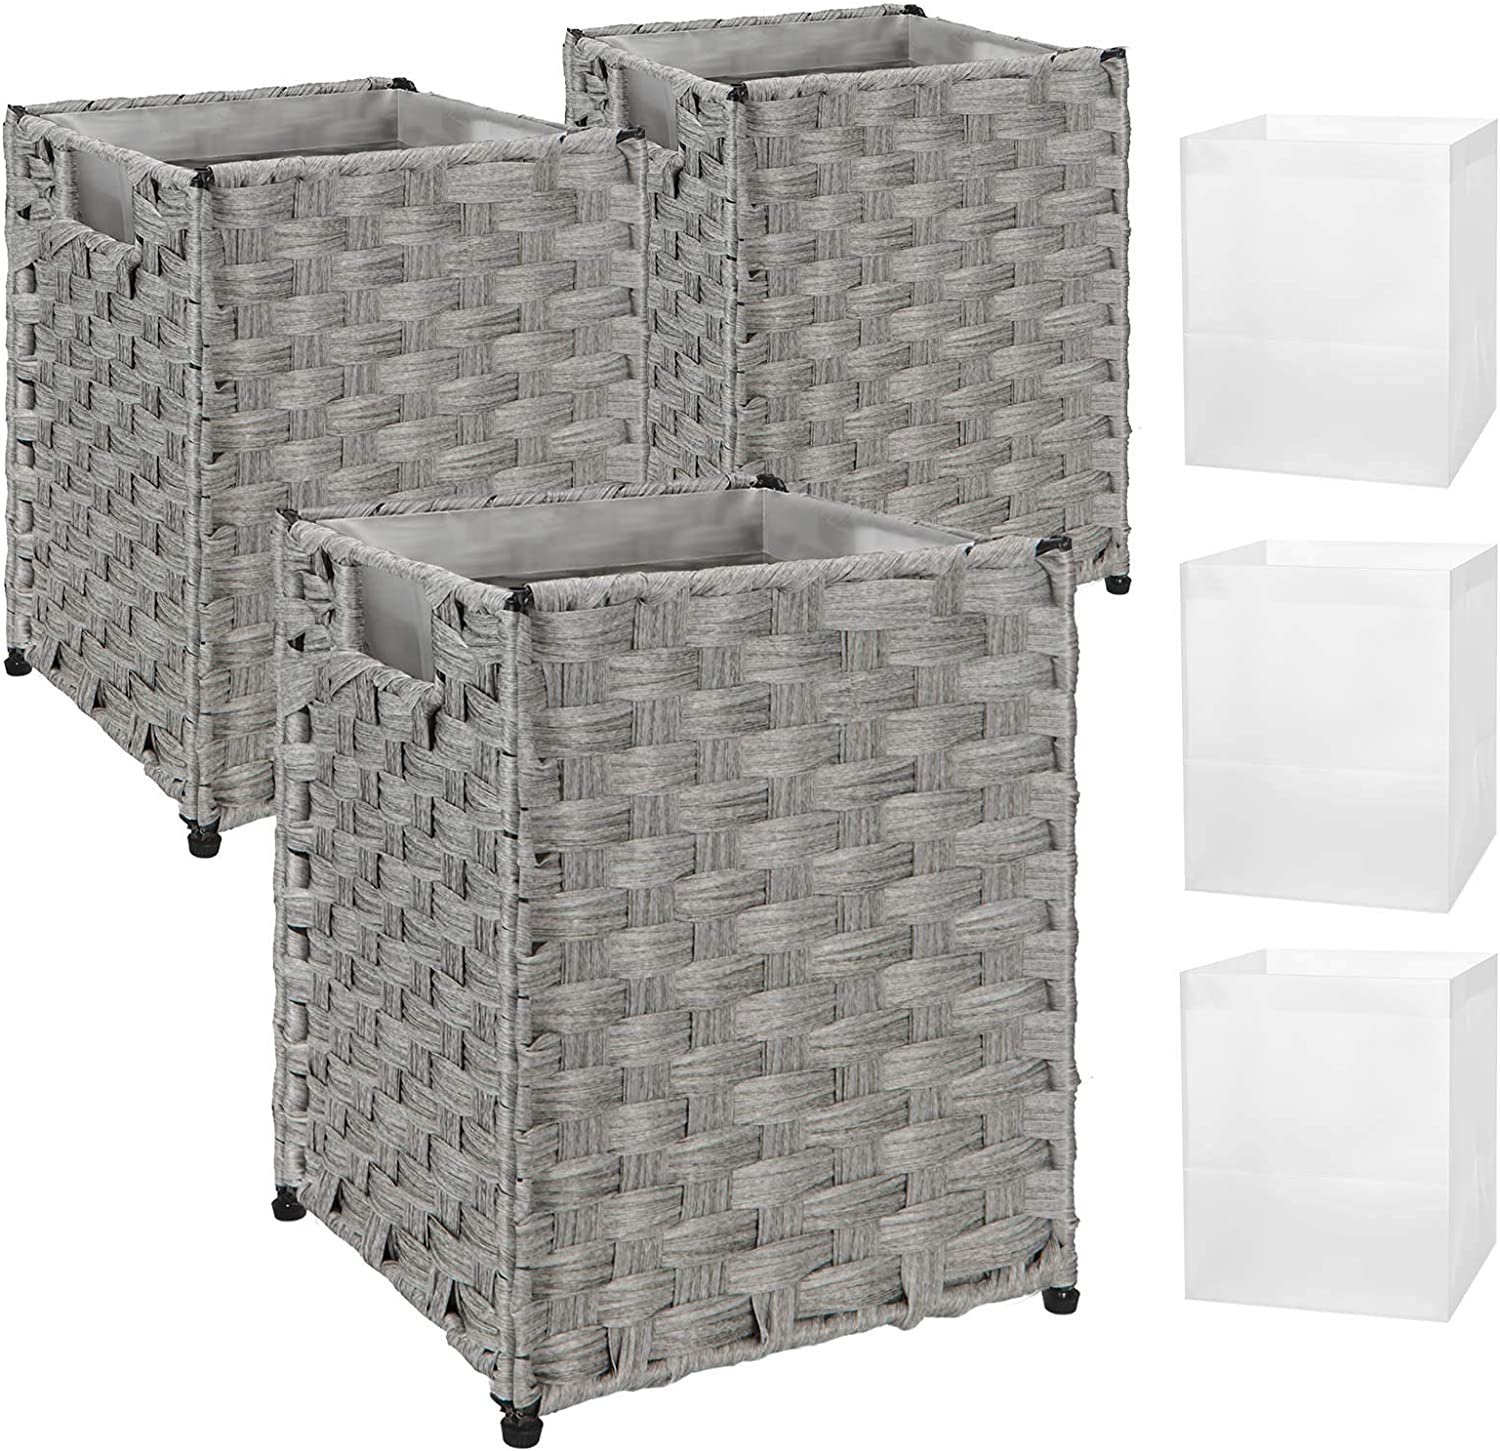 GREENSTELL Waste Basket with 6 Selling and selling Easy-to-use Hand Liners Replaceable Woven Ba